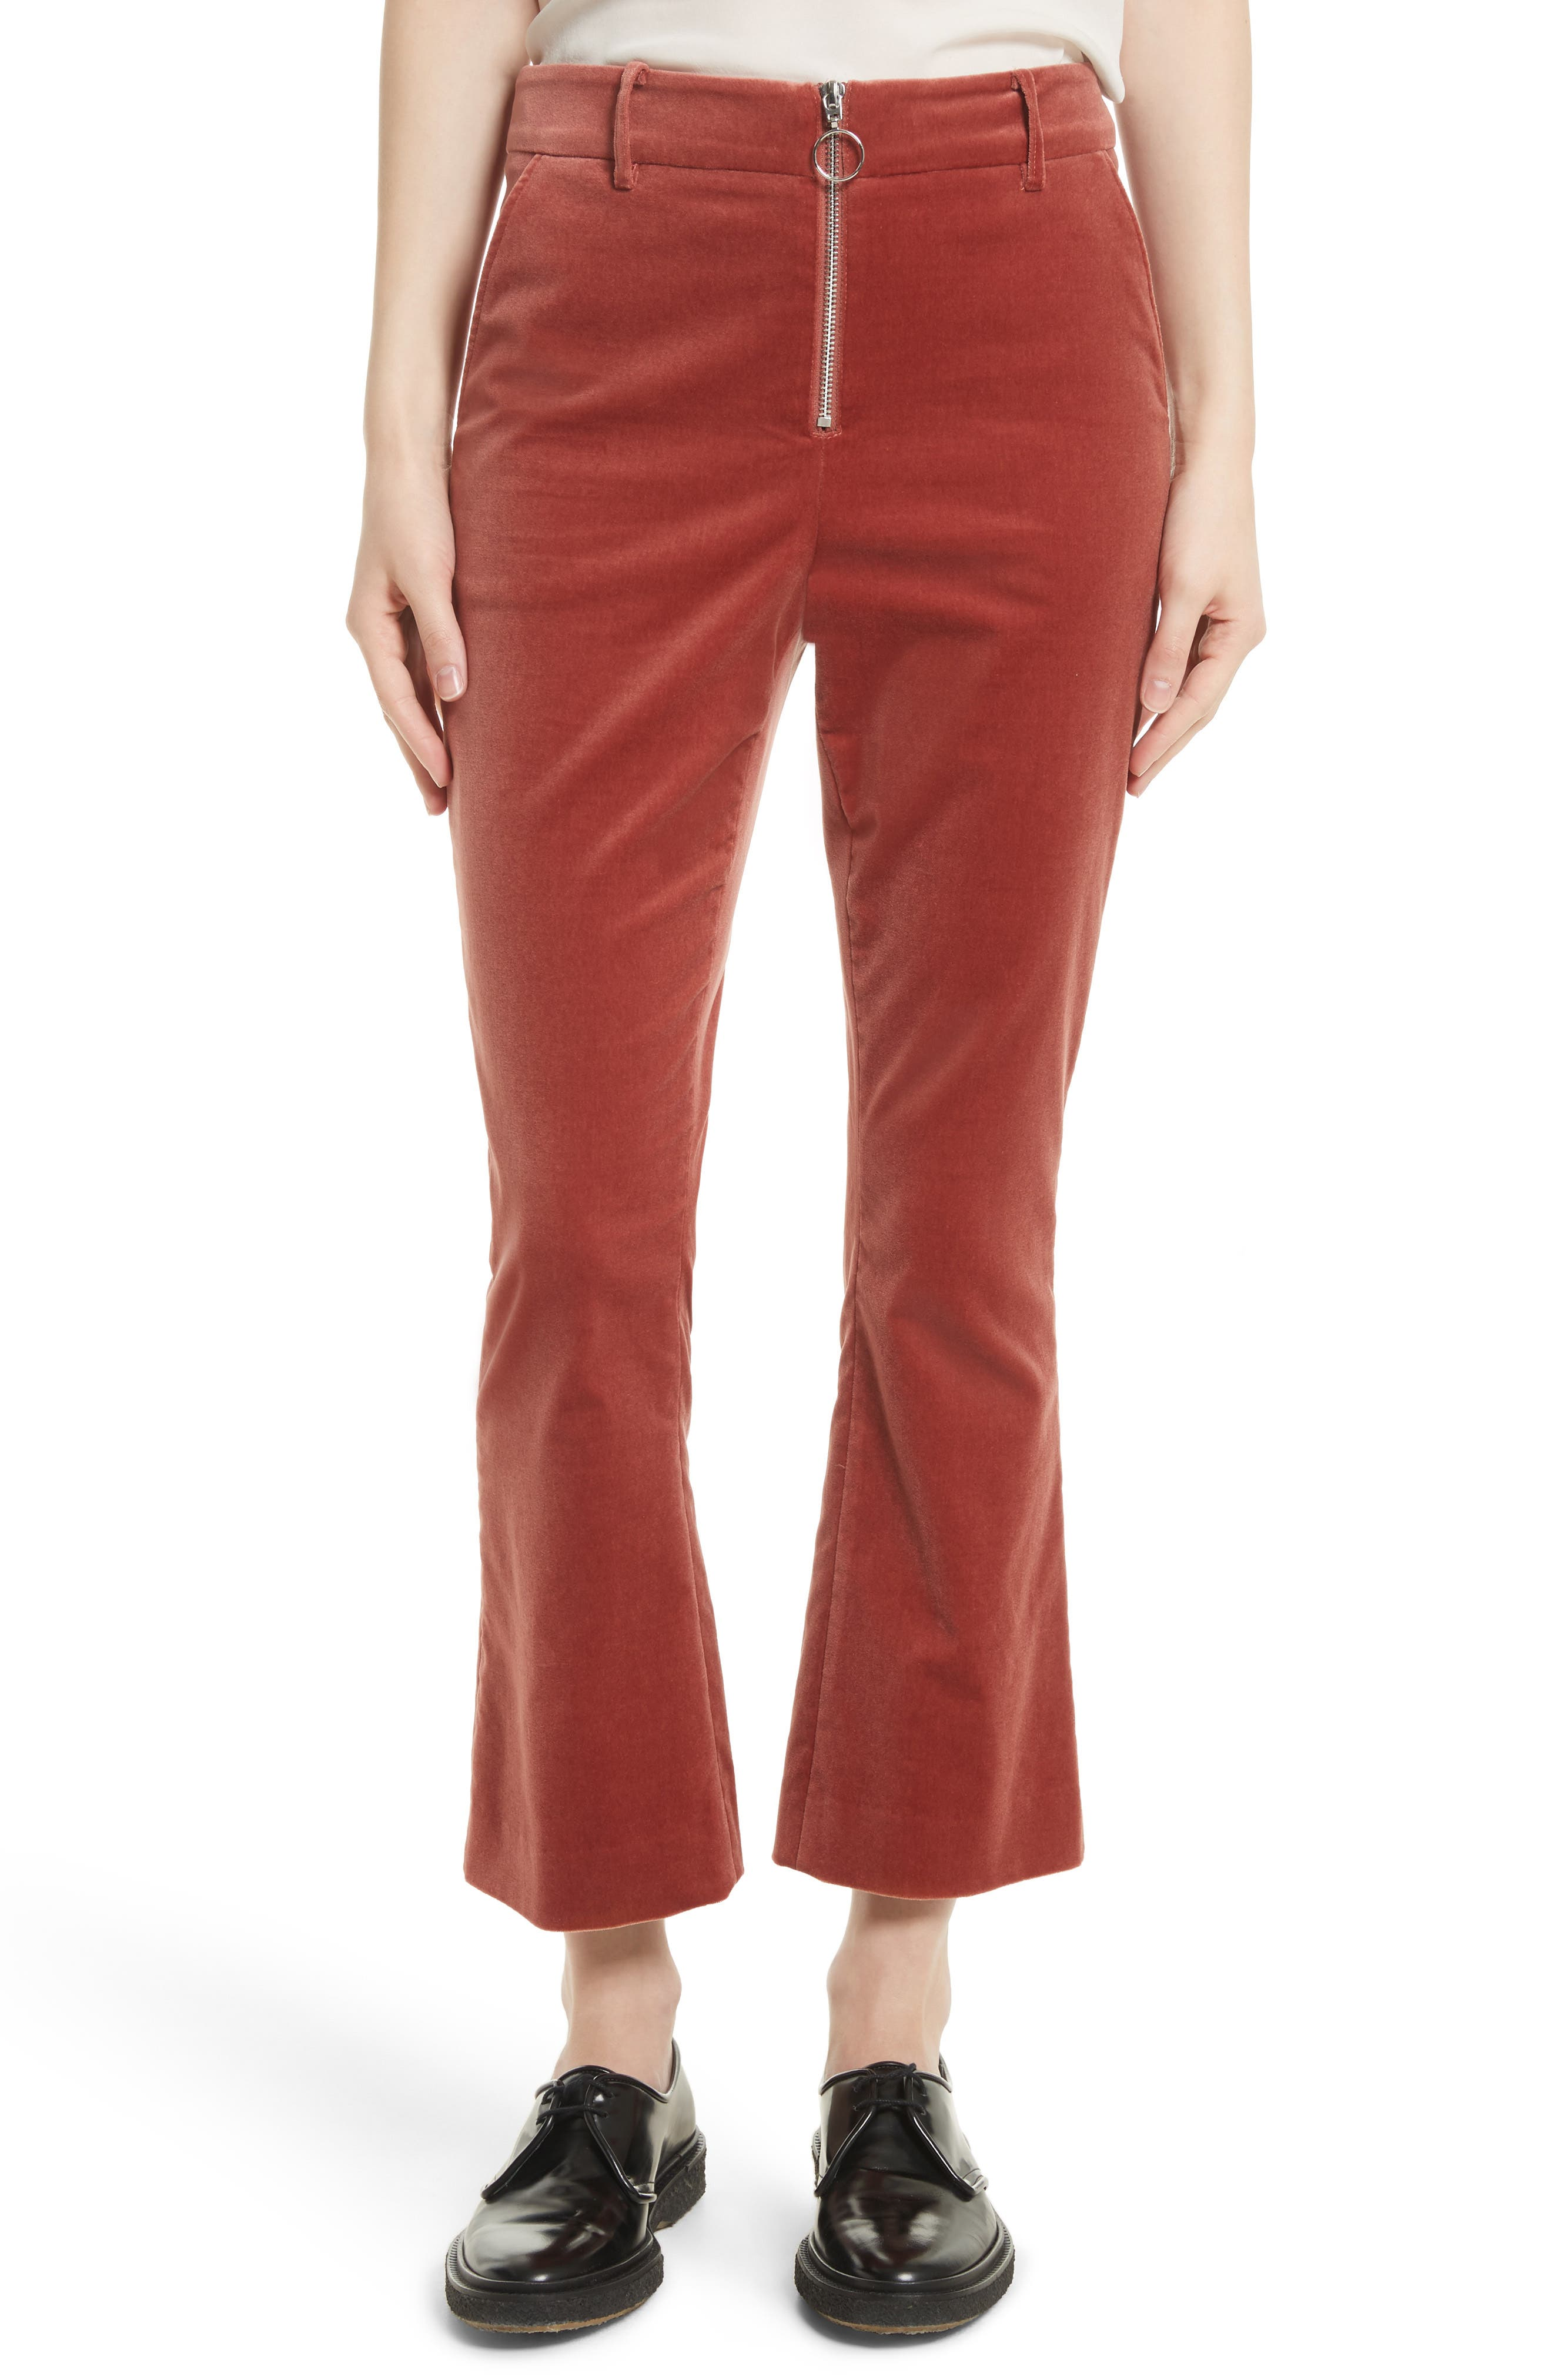 O-Ring Velvet Crop Flare Pants,                             Main thumbnail 1, color,                             Spice